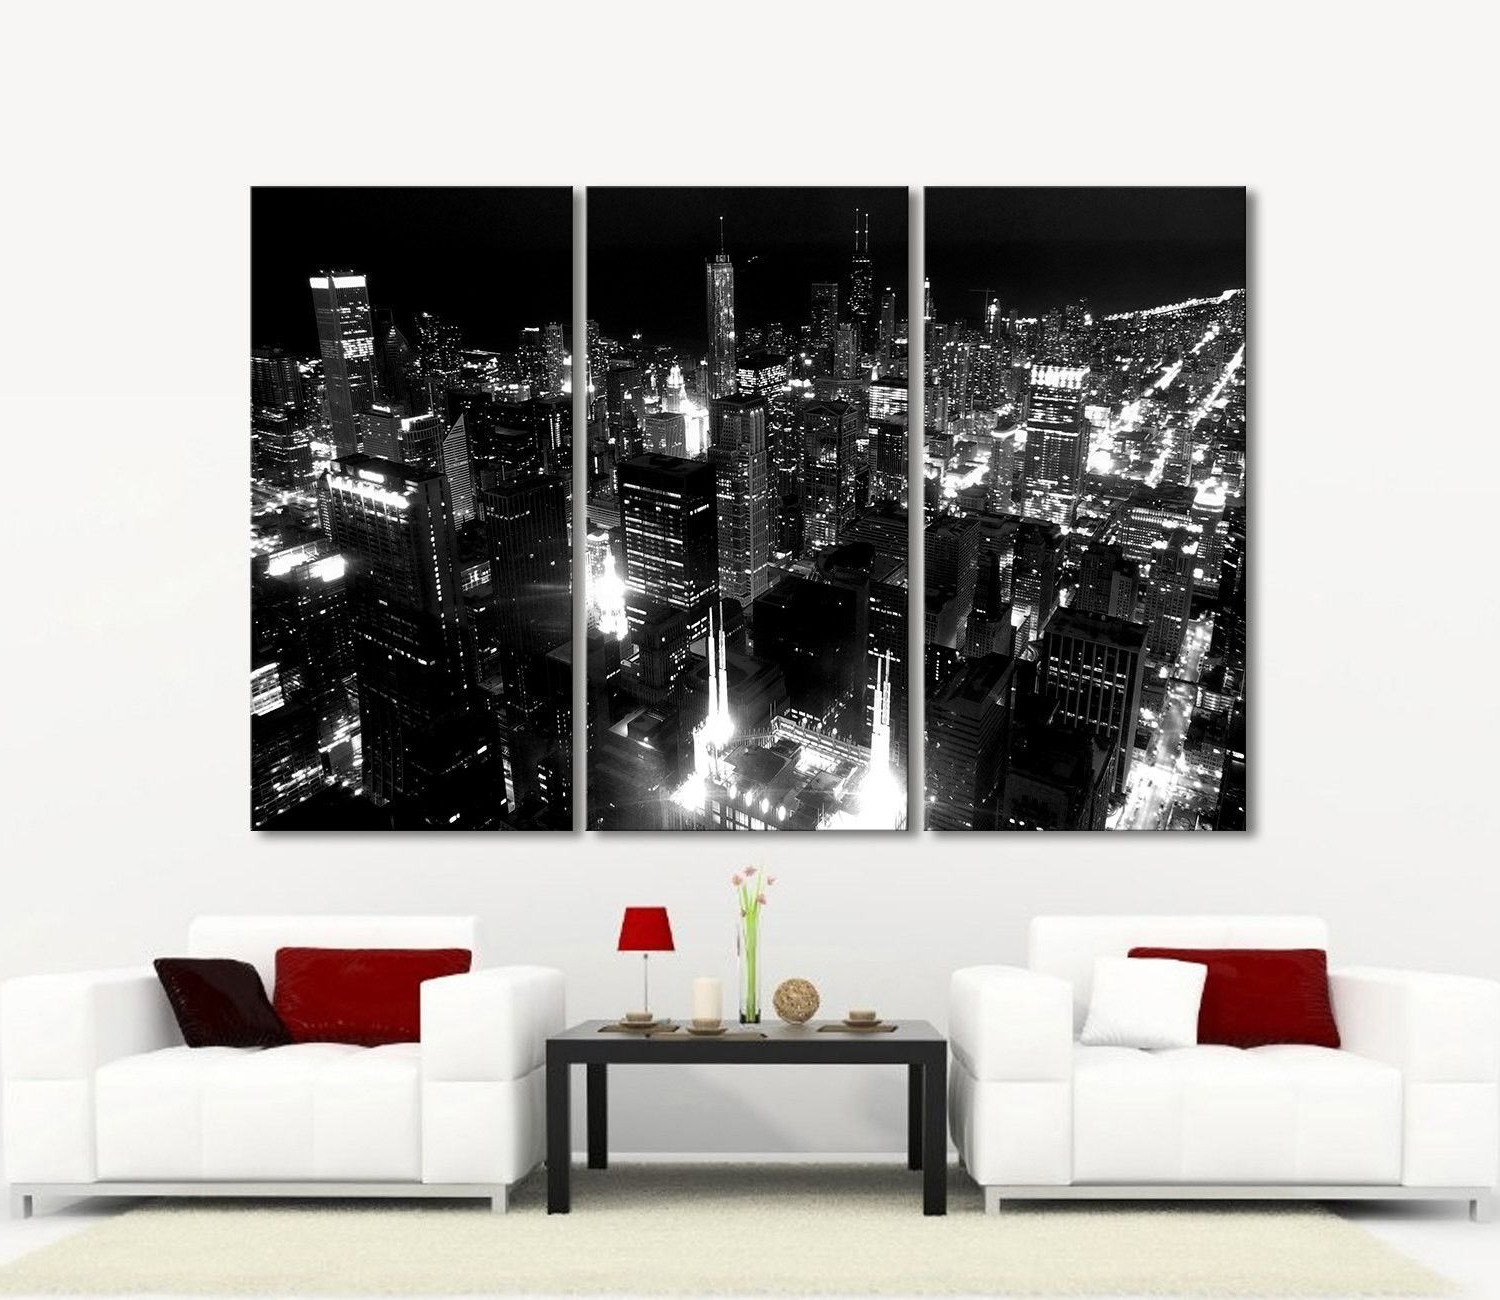 Widely Used Large Wall Art Canvas Print Chicago City Skyline At Night – 3 Panel Intended For Chicago Wall Art (View 15 of 15)